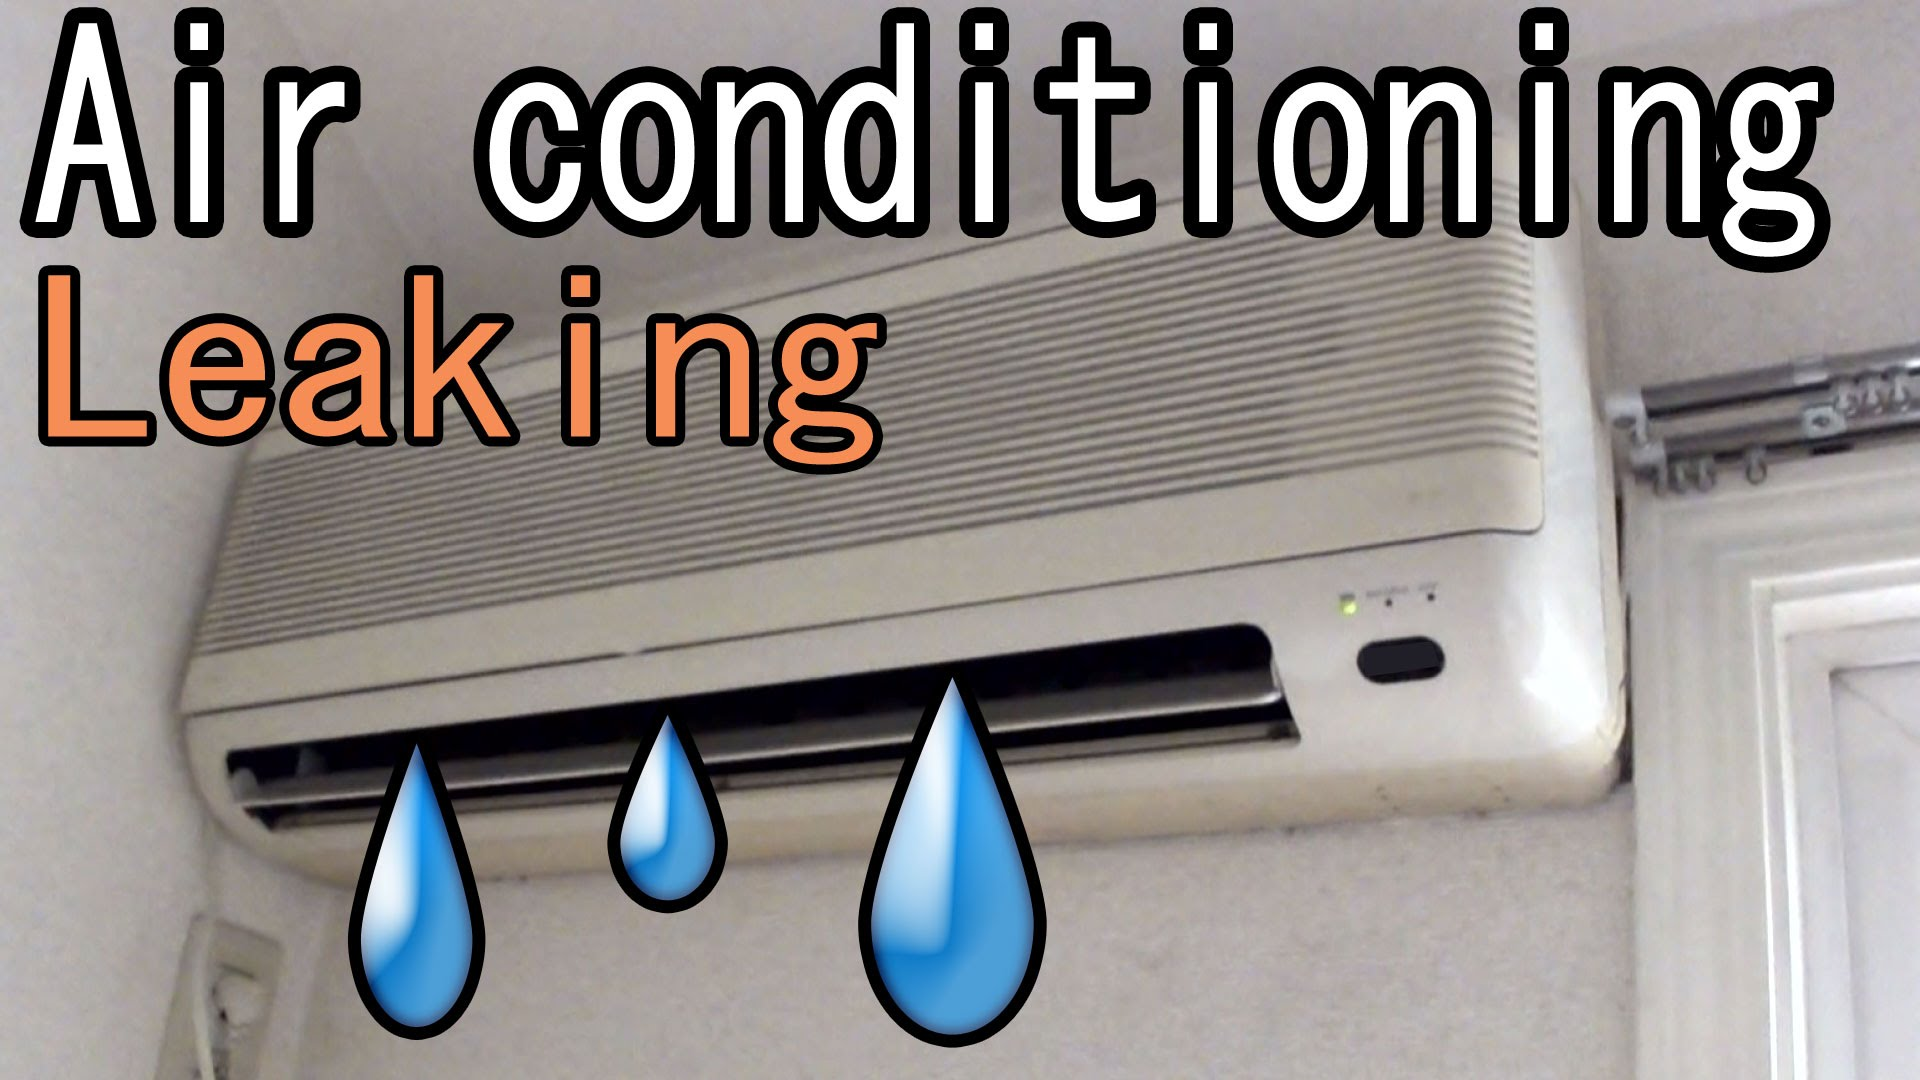 Why is there water coming from my Air Conditioner?